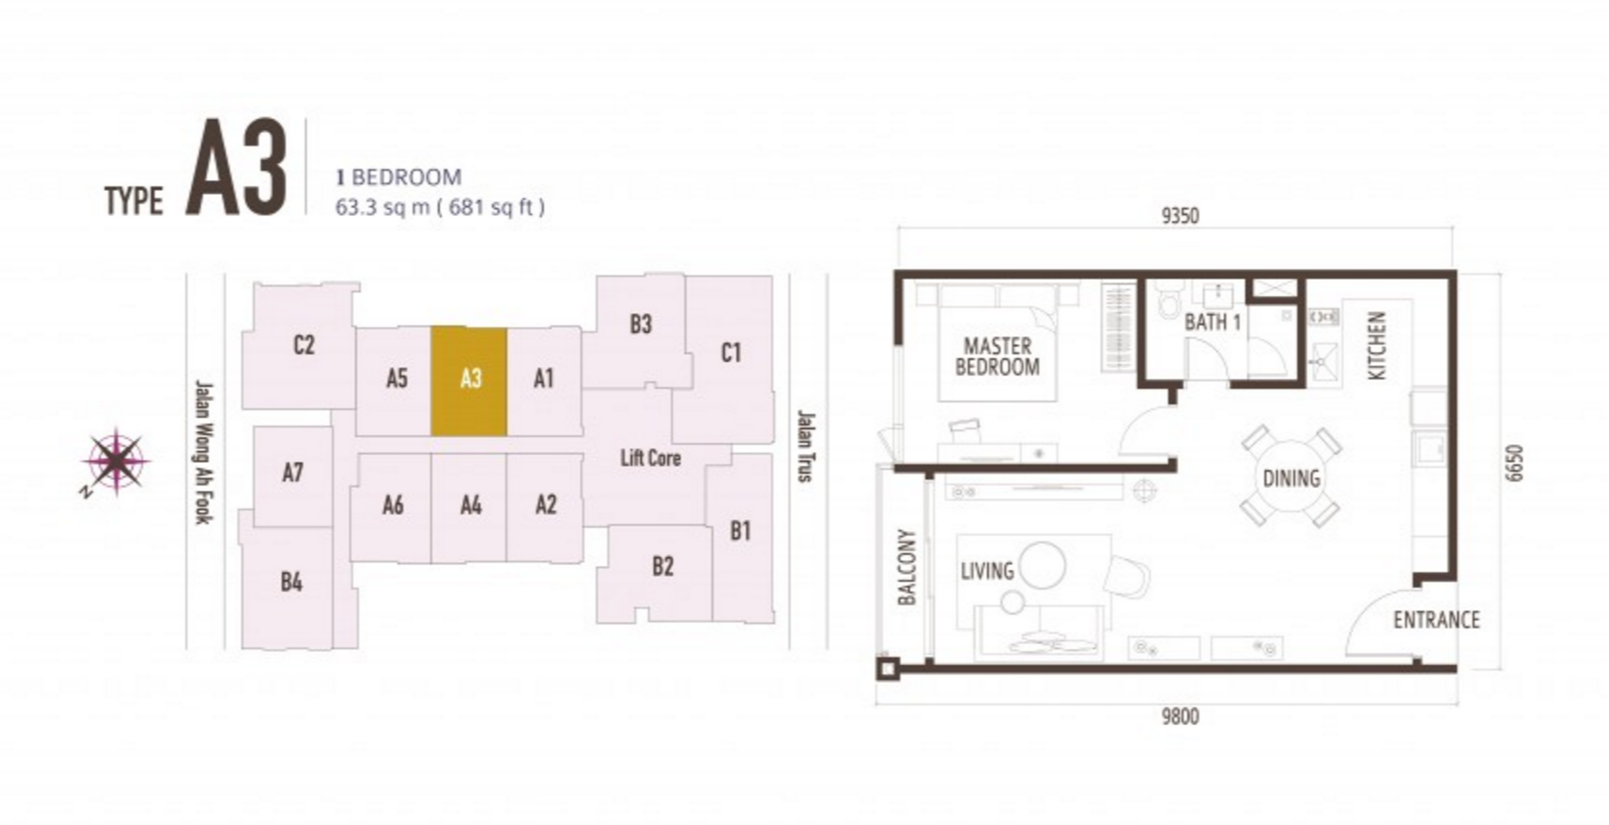 FloorPlan 1 Bedroom Type A3